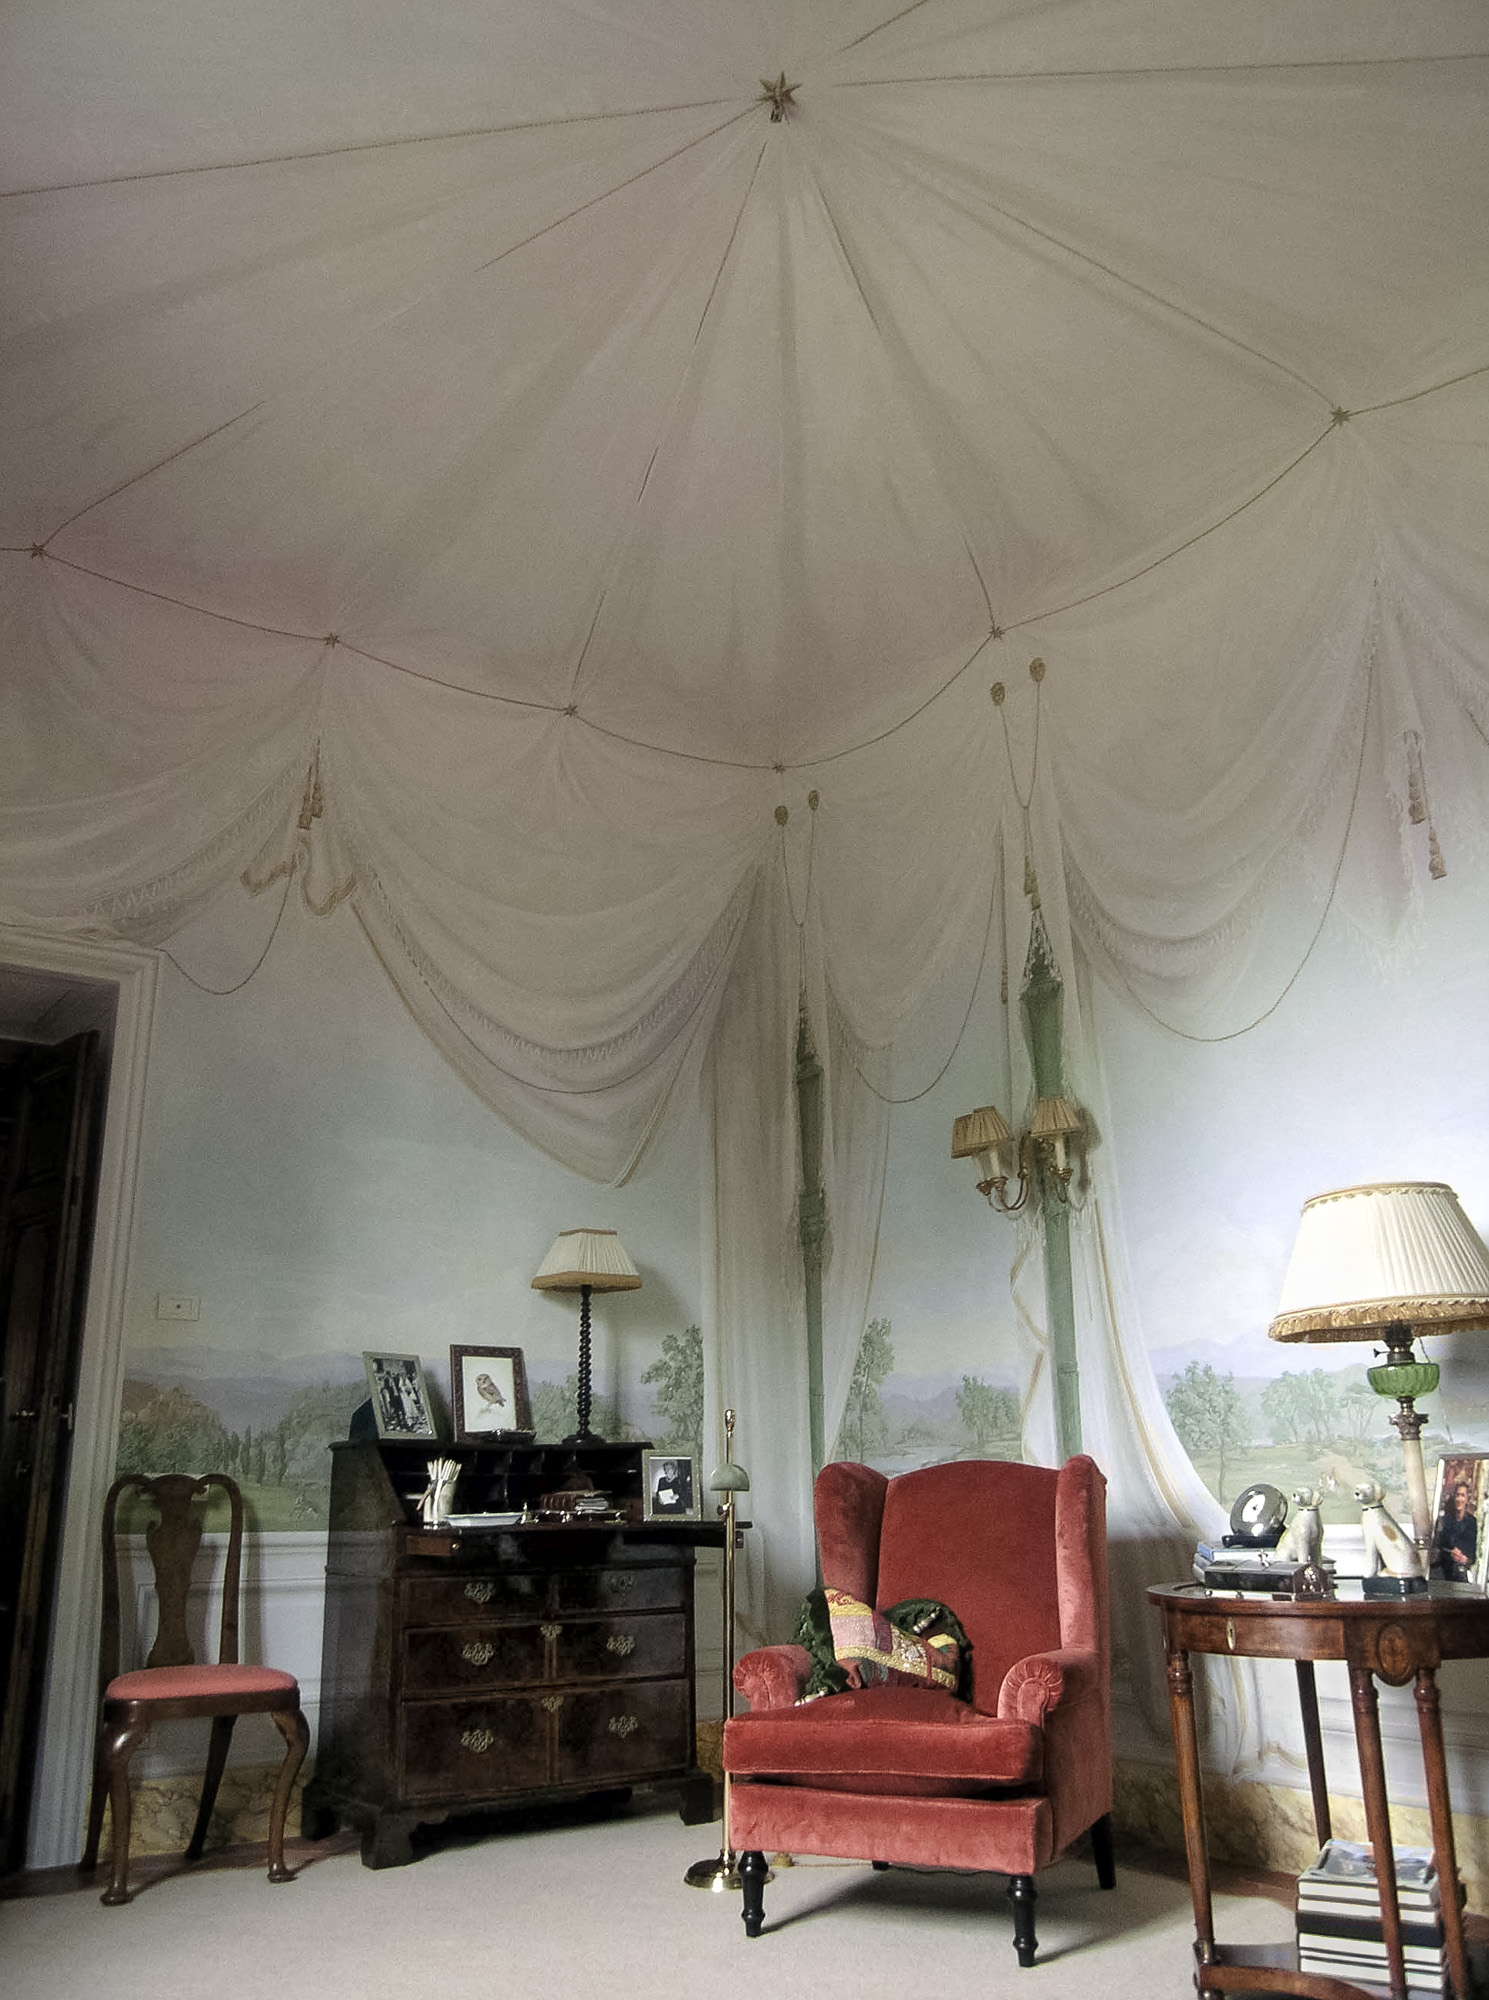 Tented room with furniture - Alexander Hamilton - Decorative Artist - London